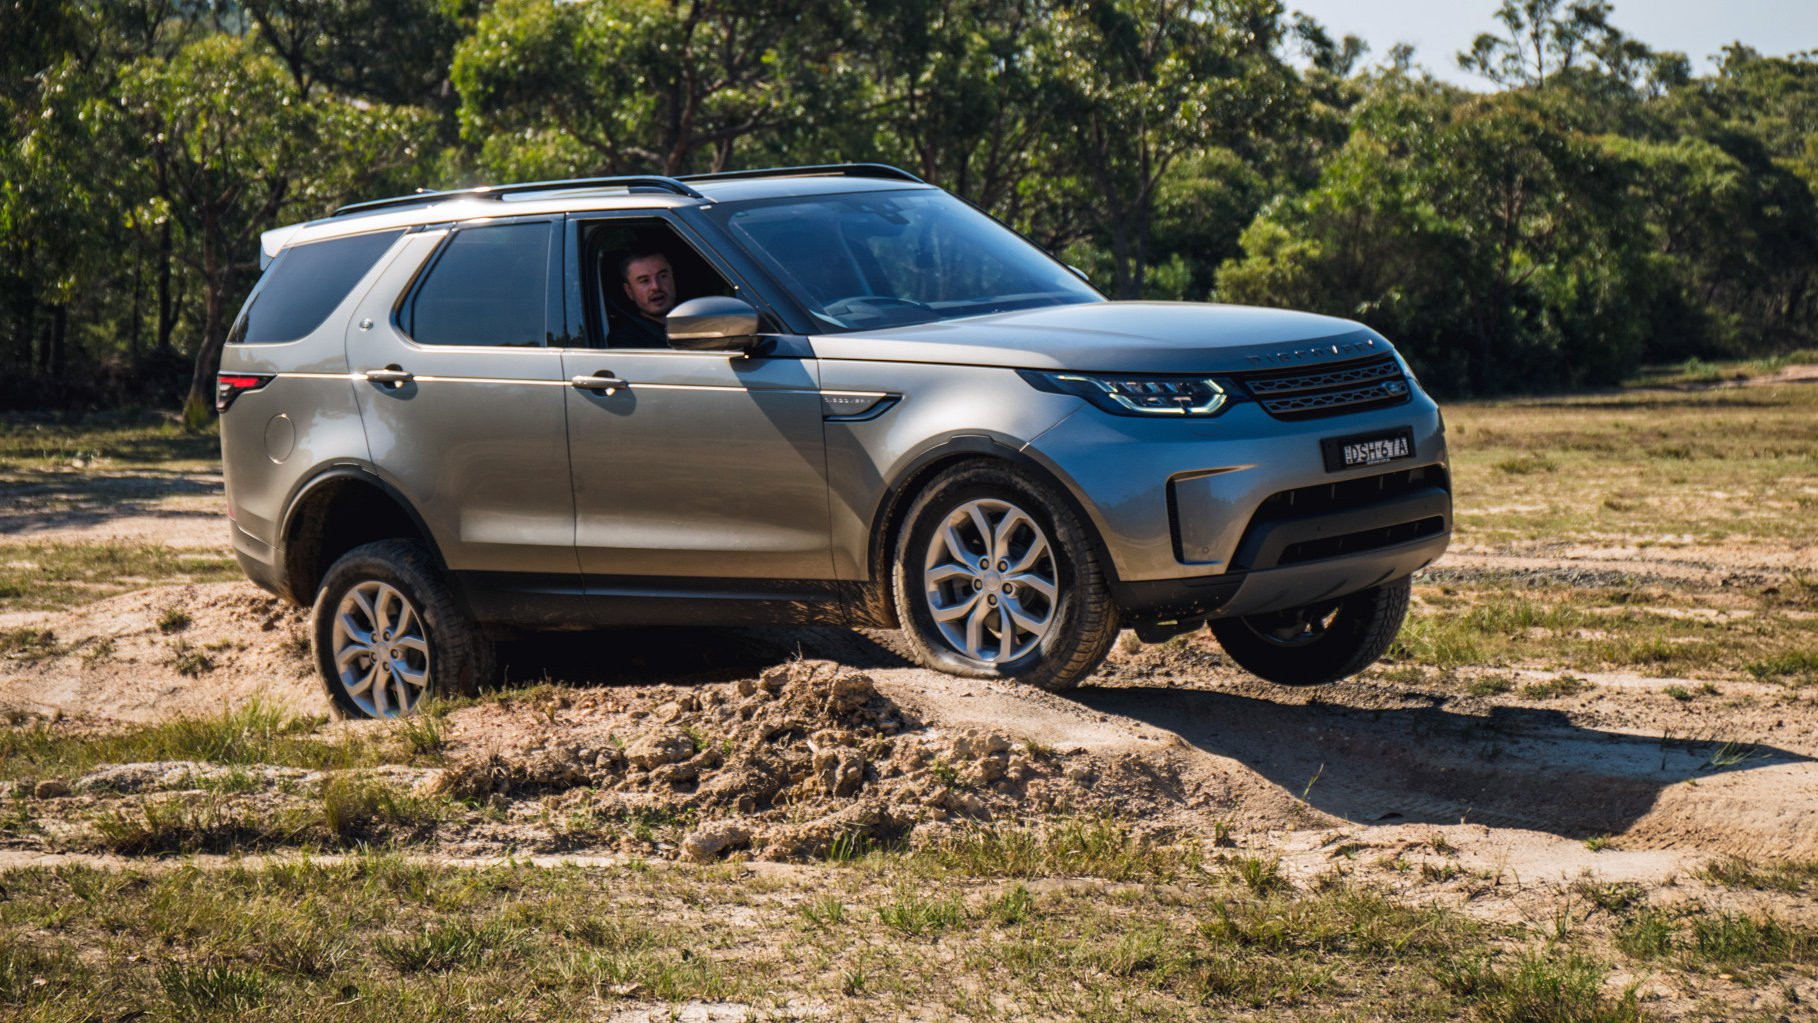 2018 Land Rover Discovery Sd4 SE review | CarAdvice